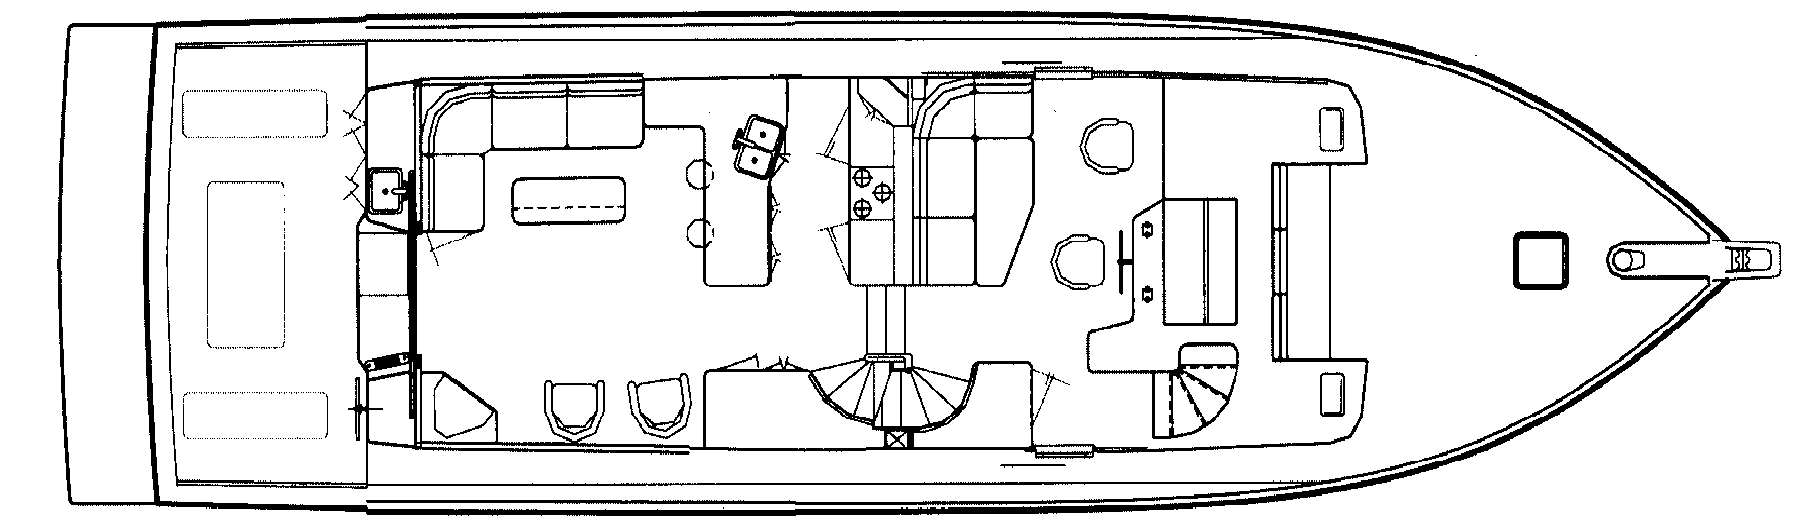 55 Pilothouse Floor Plan 1